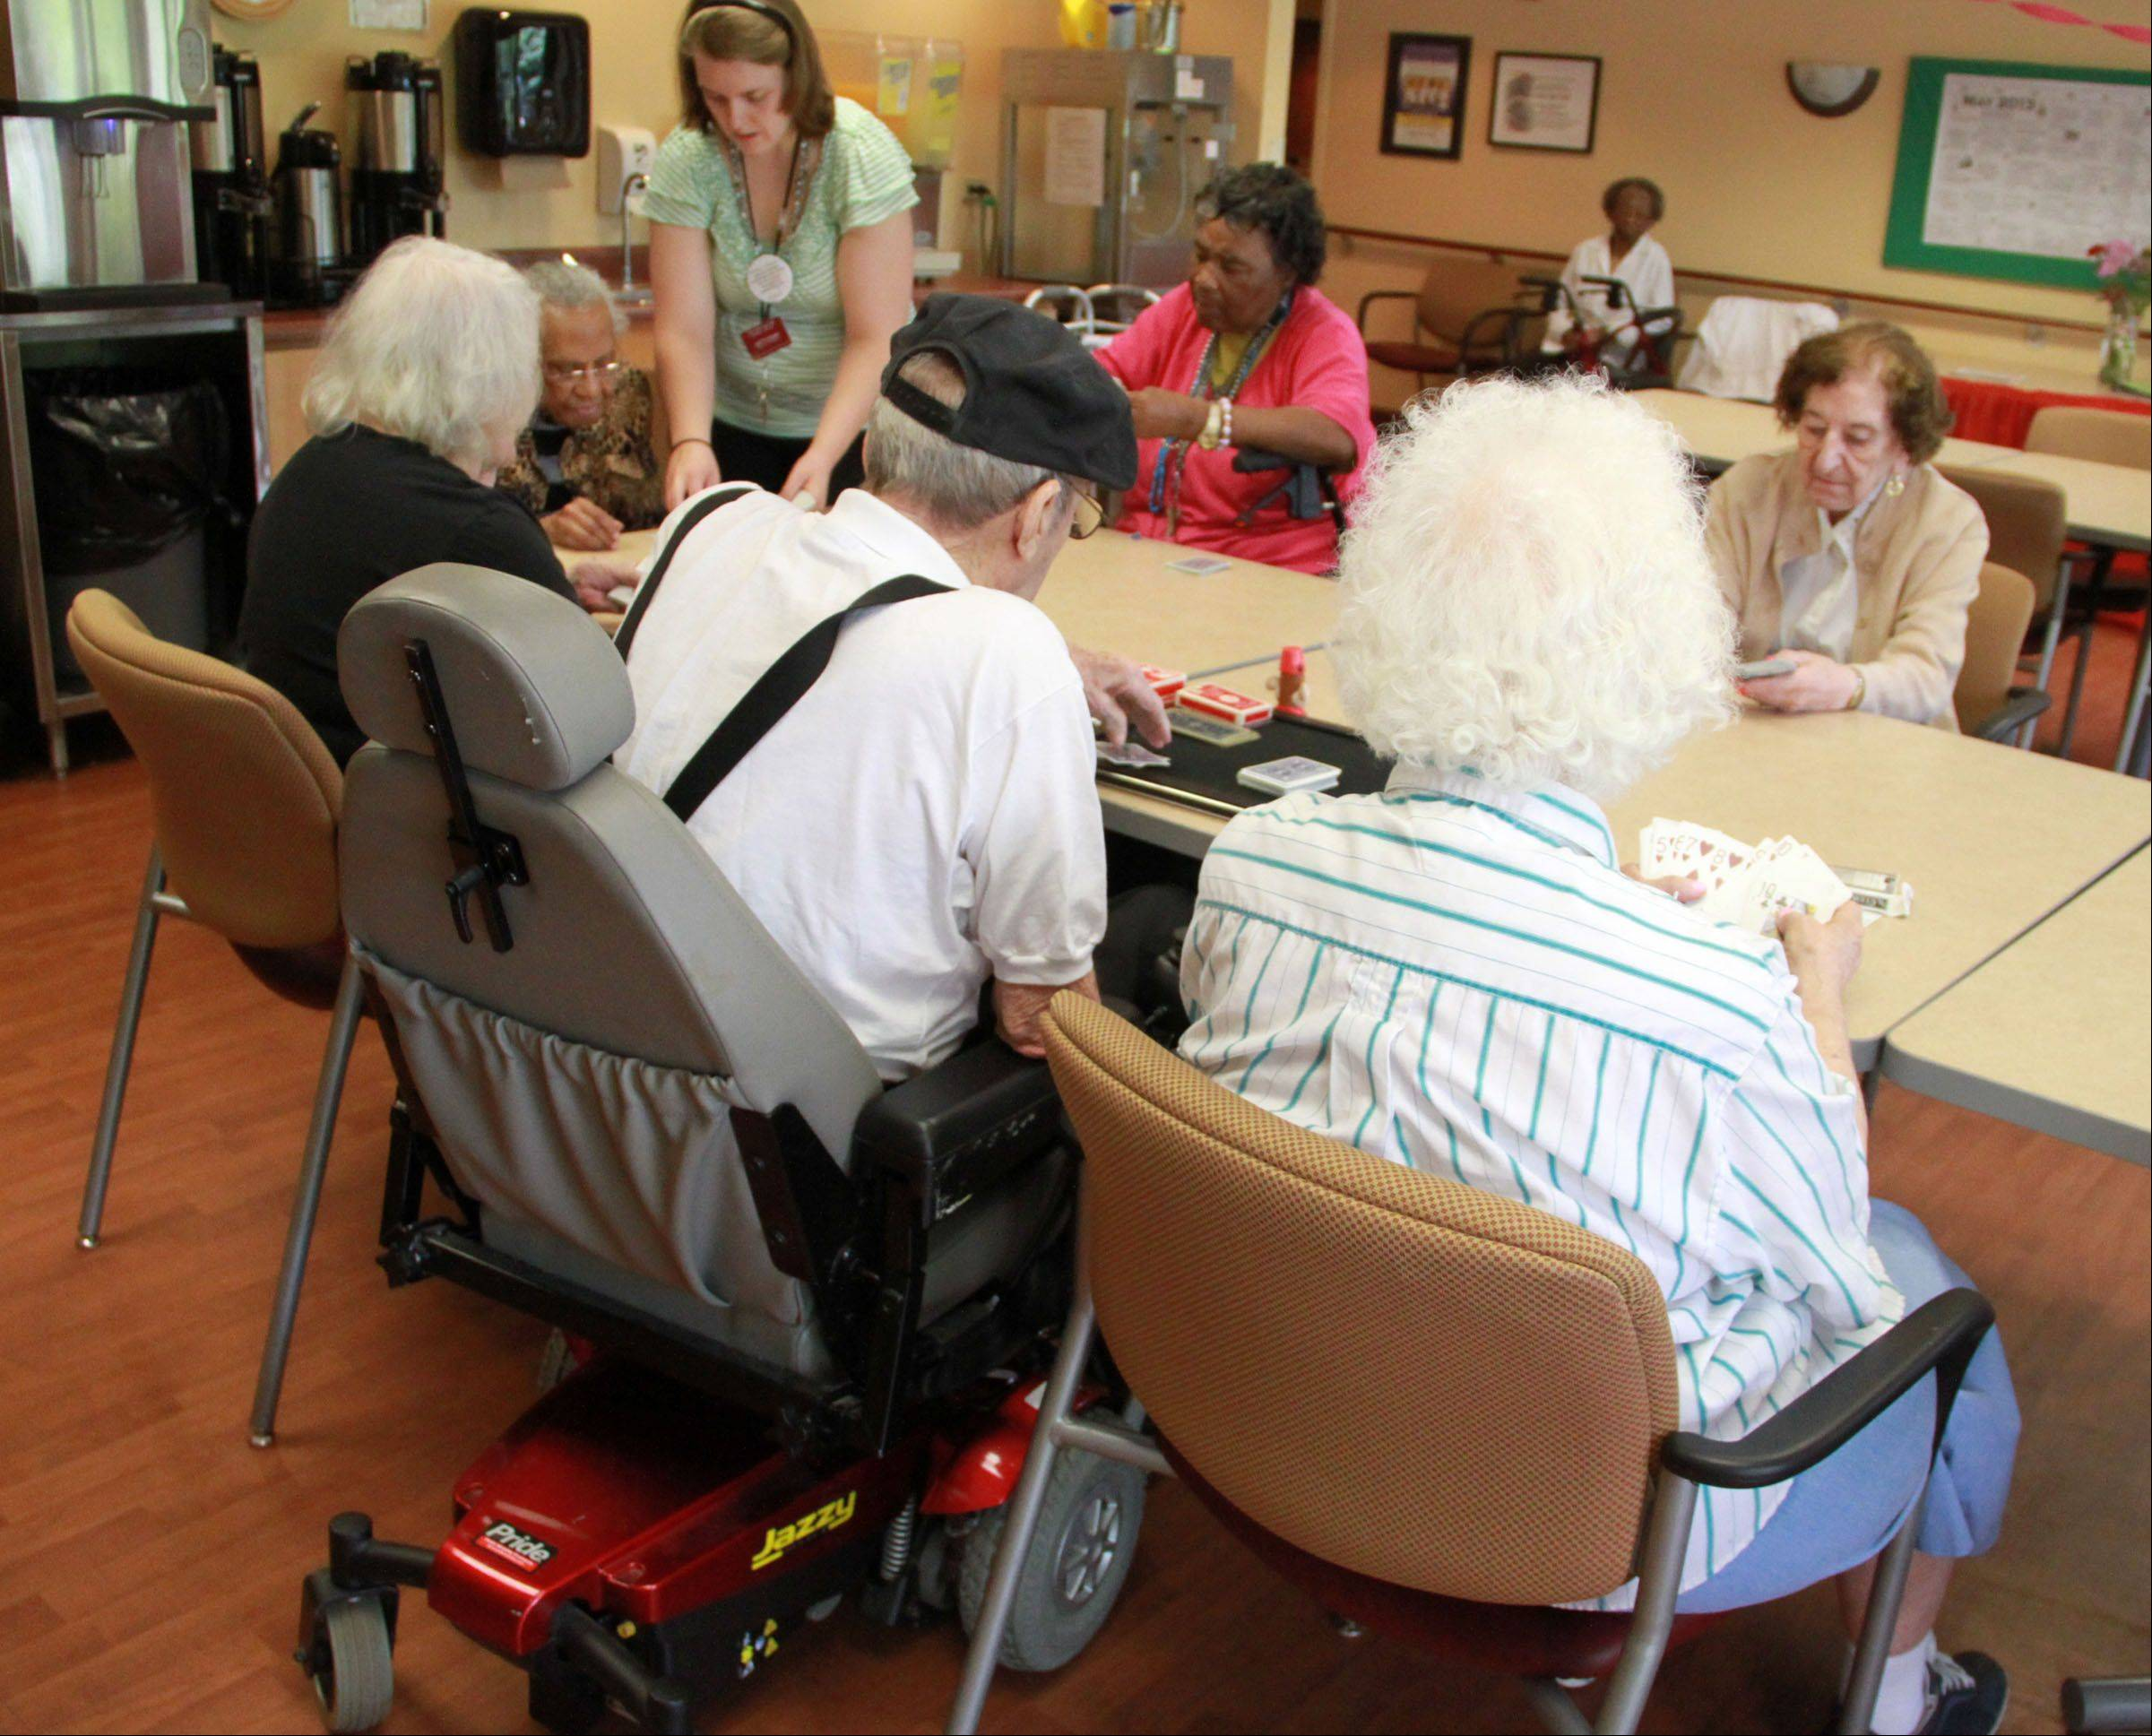 Don Theobald teaches a magic class at Victory Centre of River Woods, the assisted living facility where he lives, in Melrose Park.